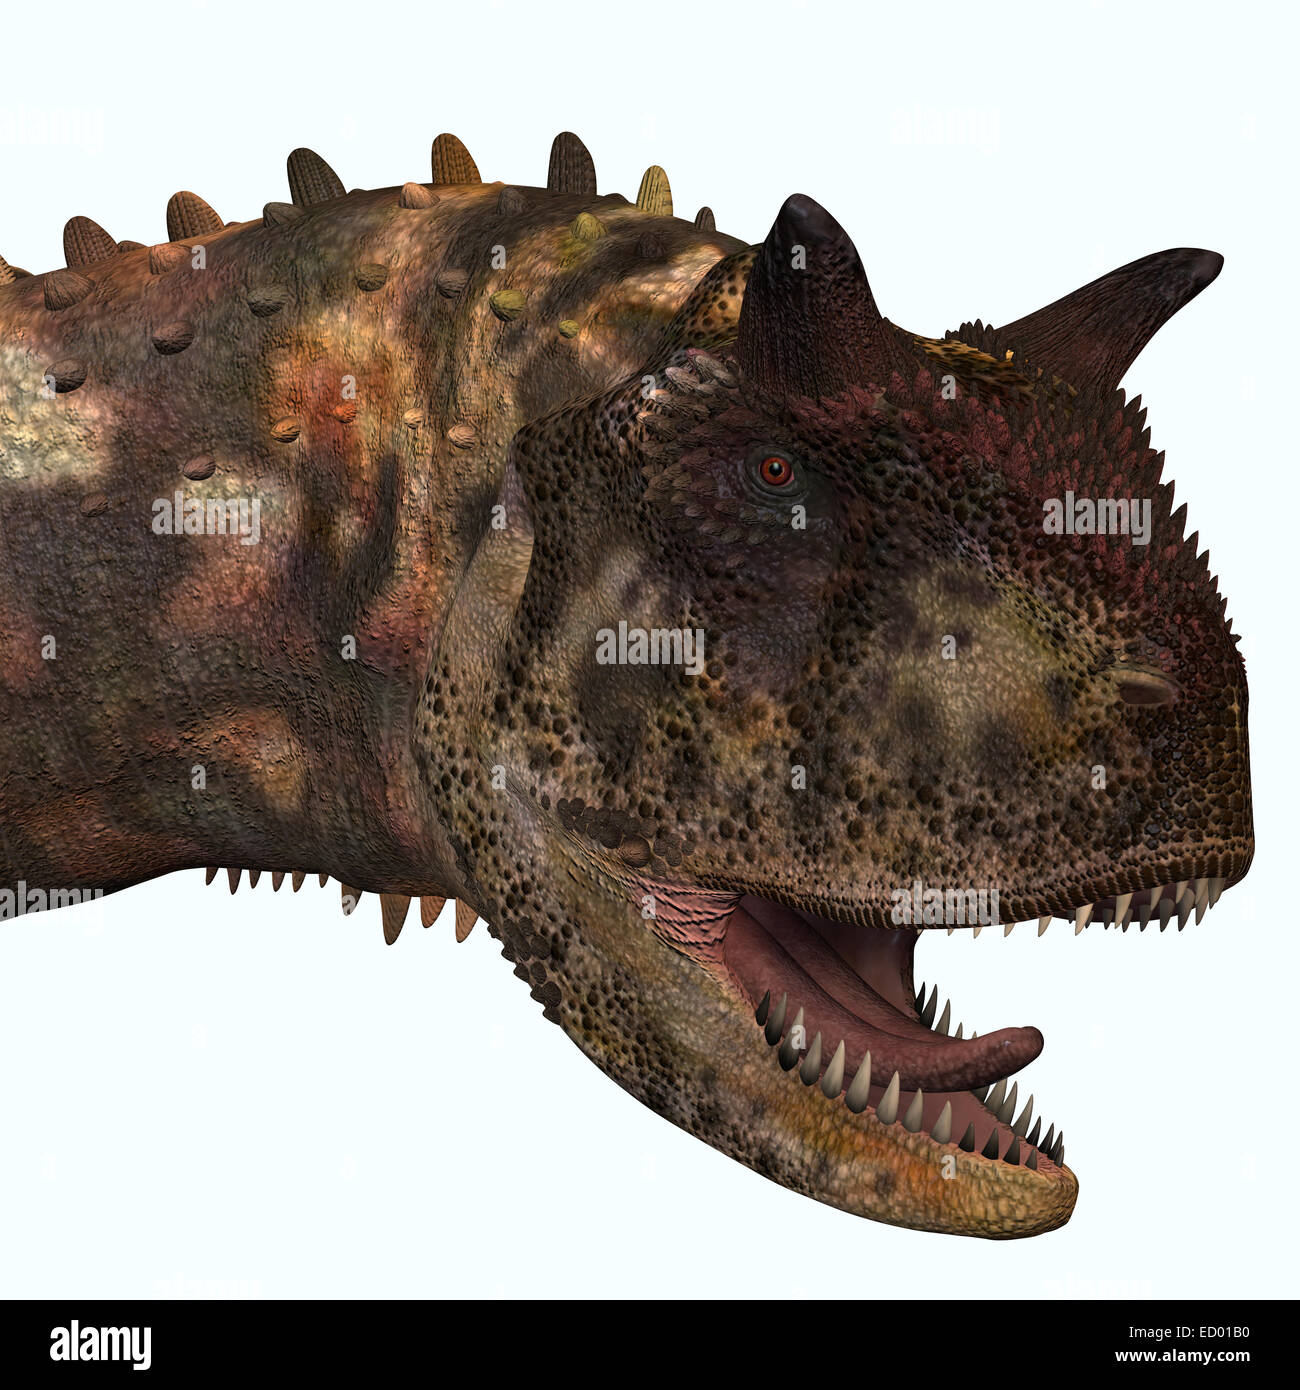 Carnotaurus was a theropod carnivorous dinosaur that lived in Argentina in the Cretaceous Period. Stock Photo